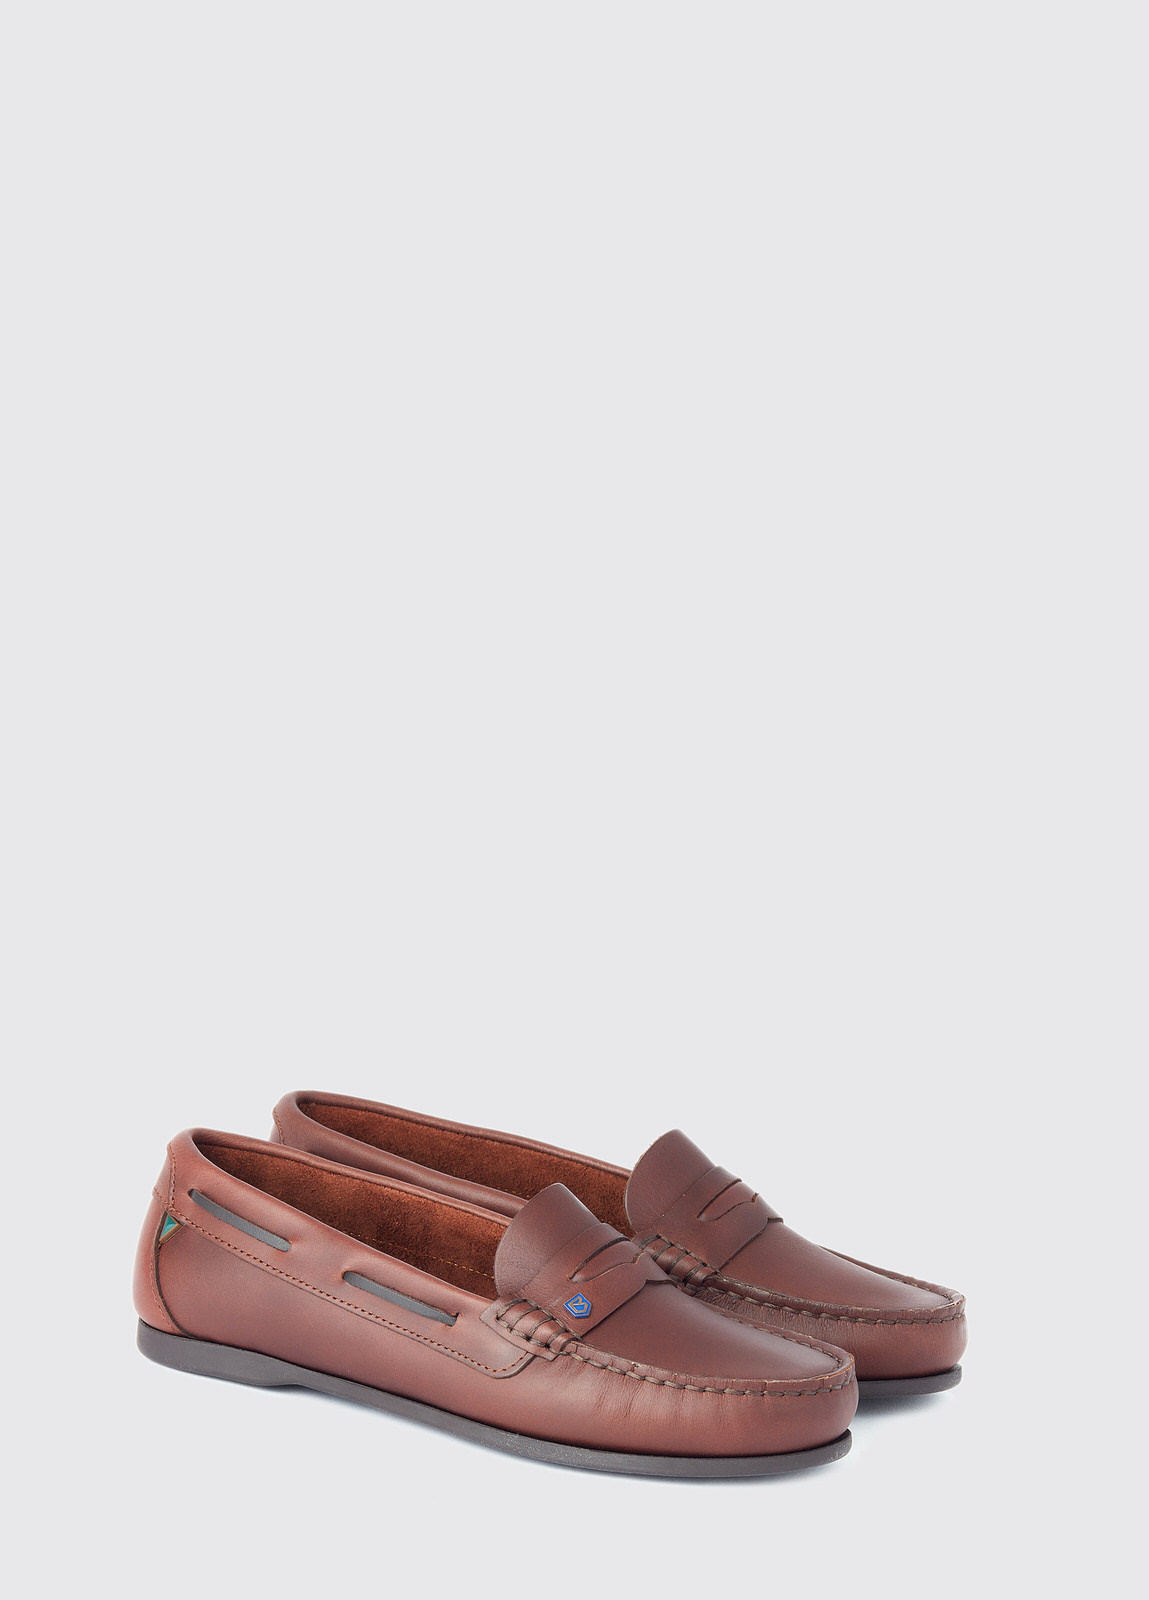 Belize Deck Shoe - Mahogany